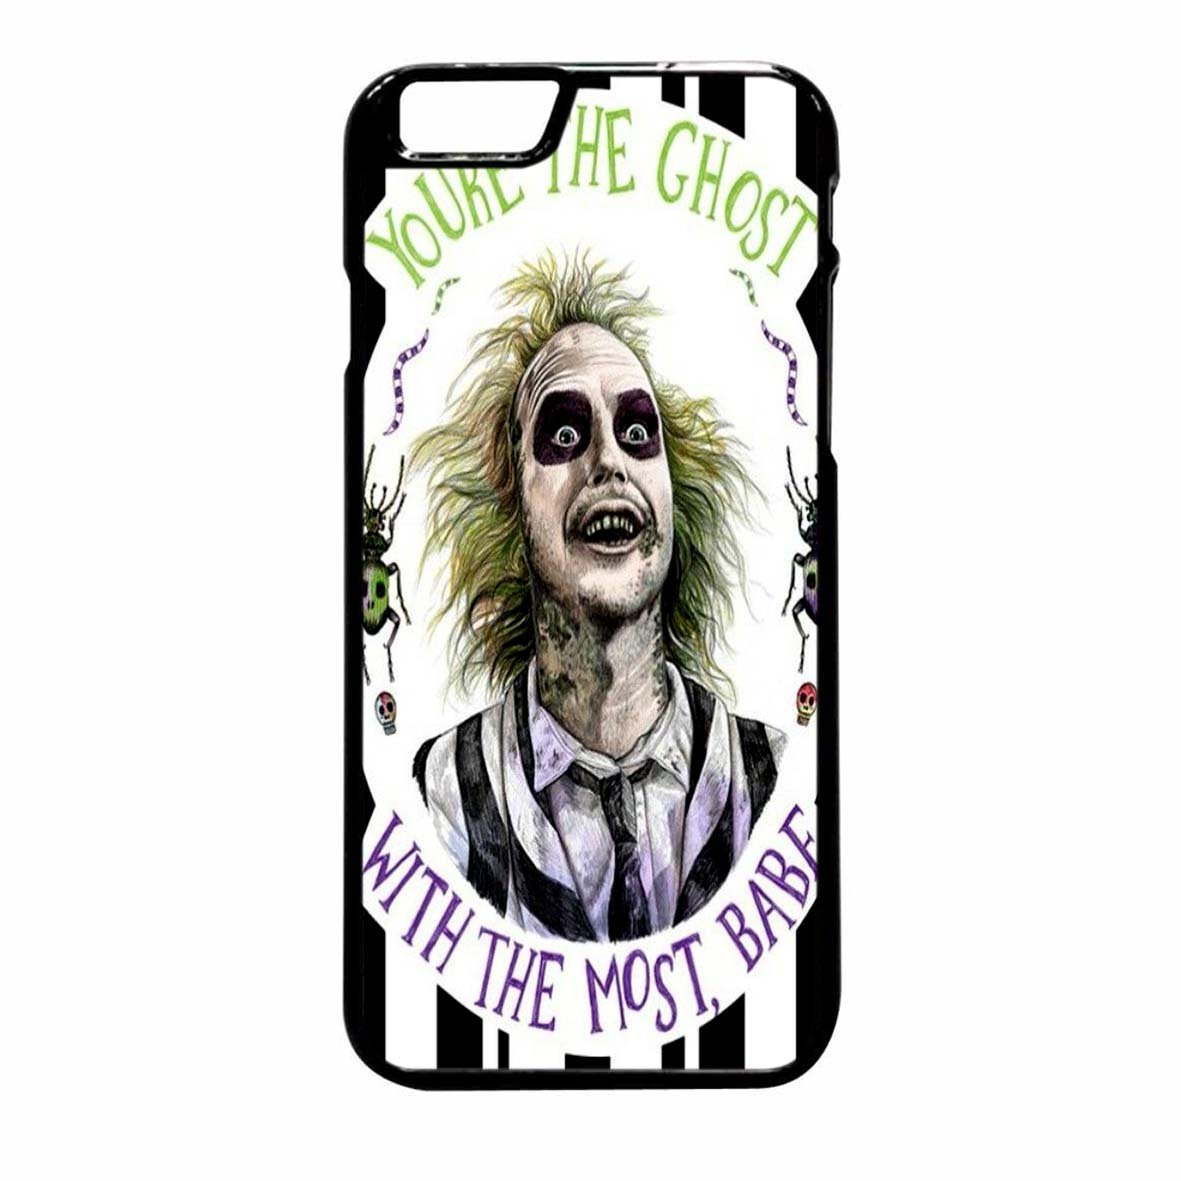 Beetlejuice iPhone Case